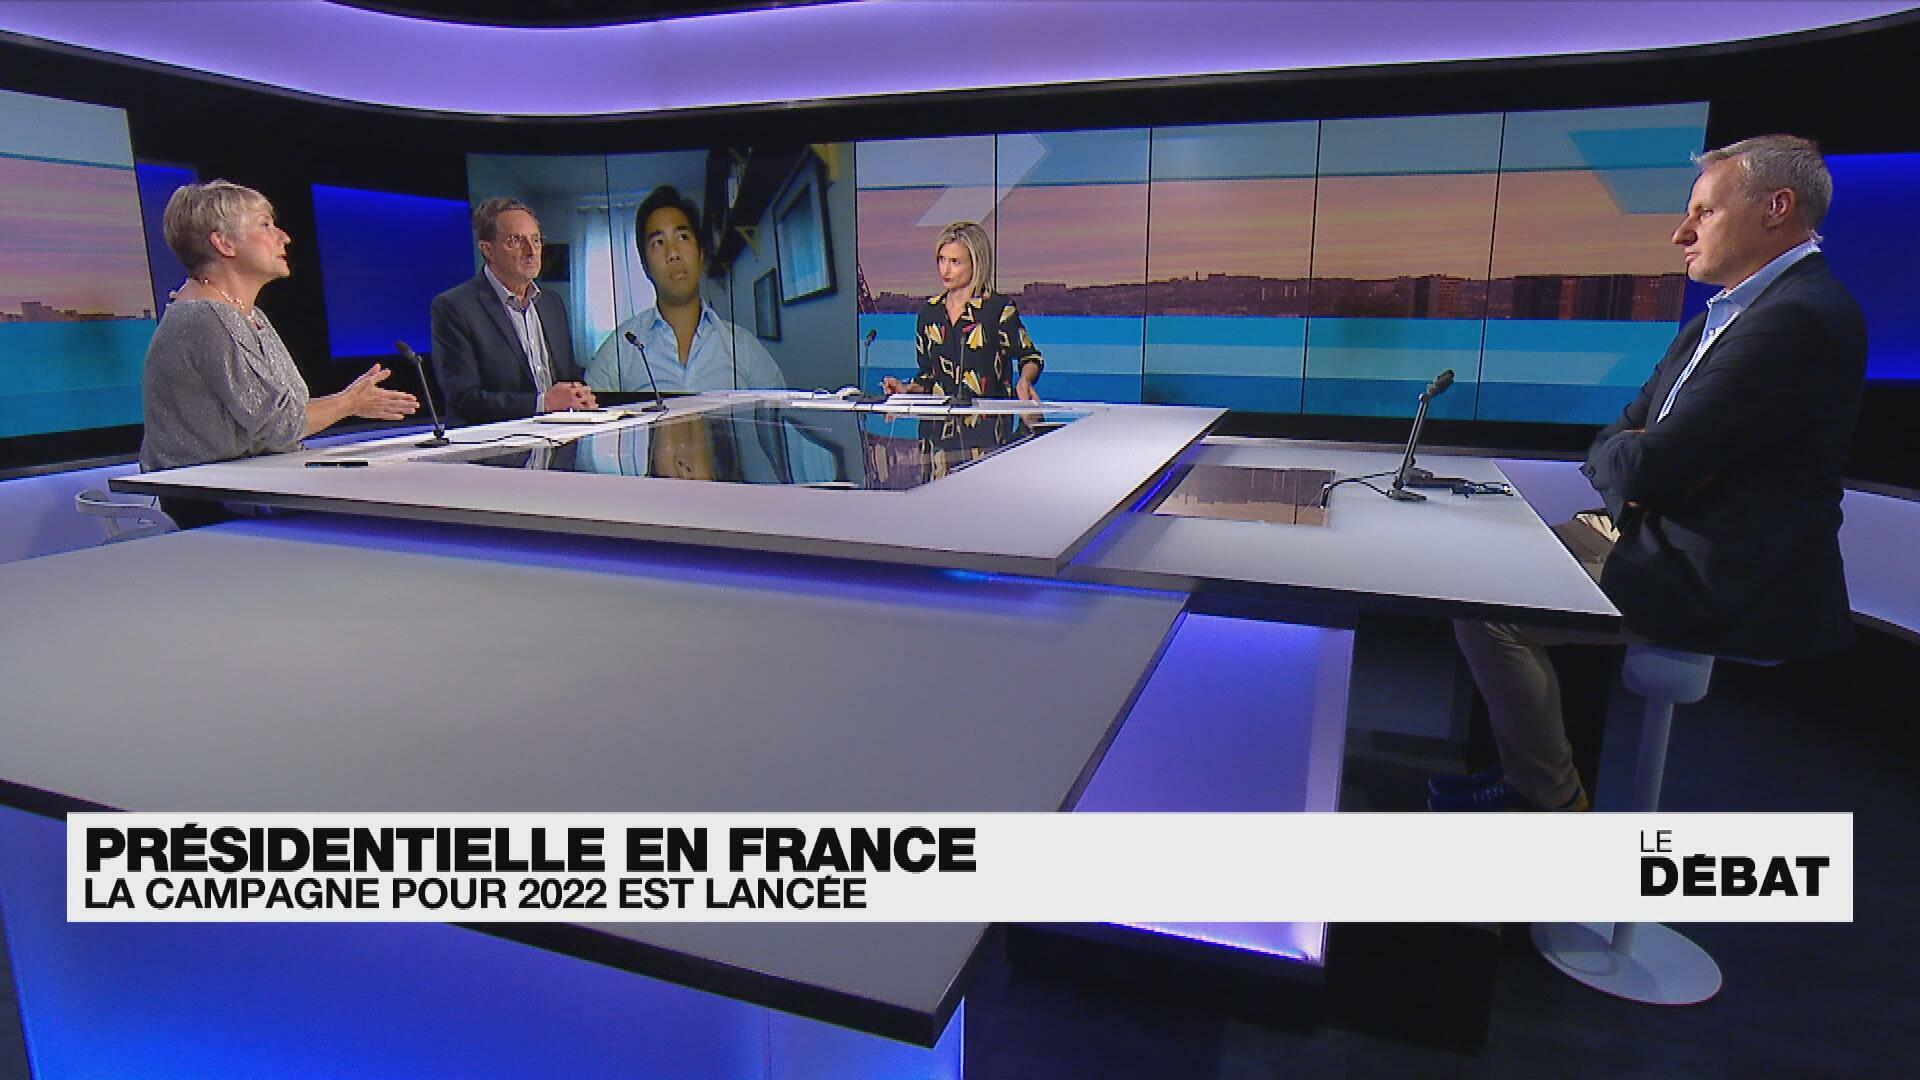 Presidential election in France: the campaign for 2022 has been launched